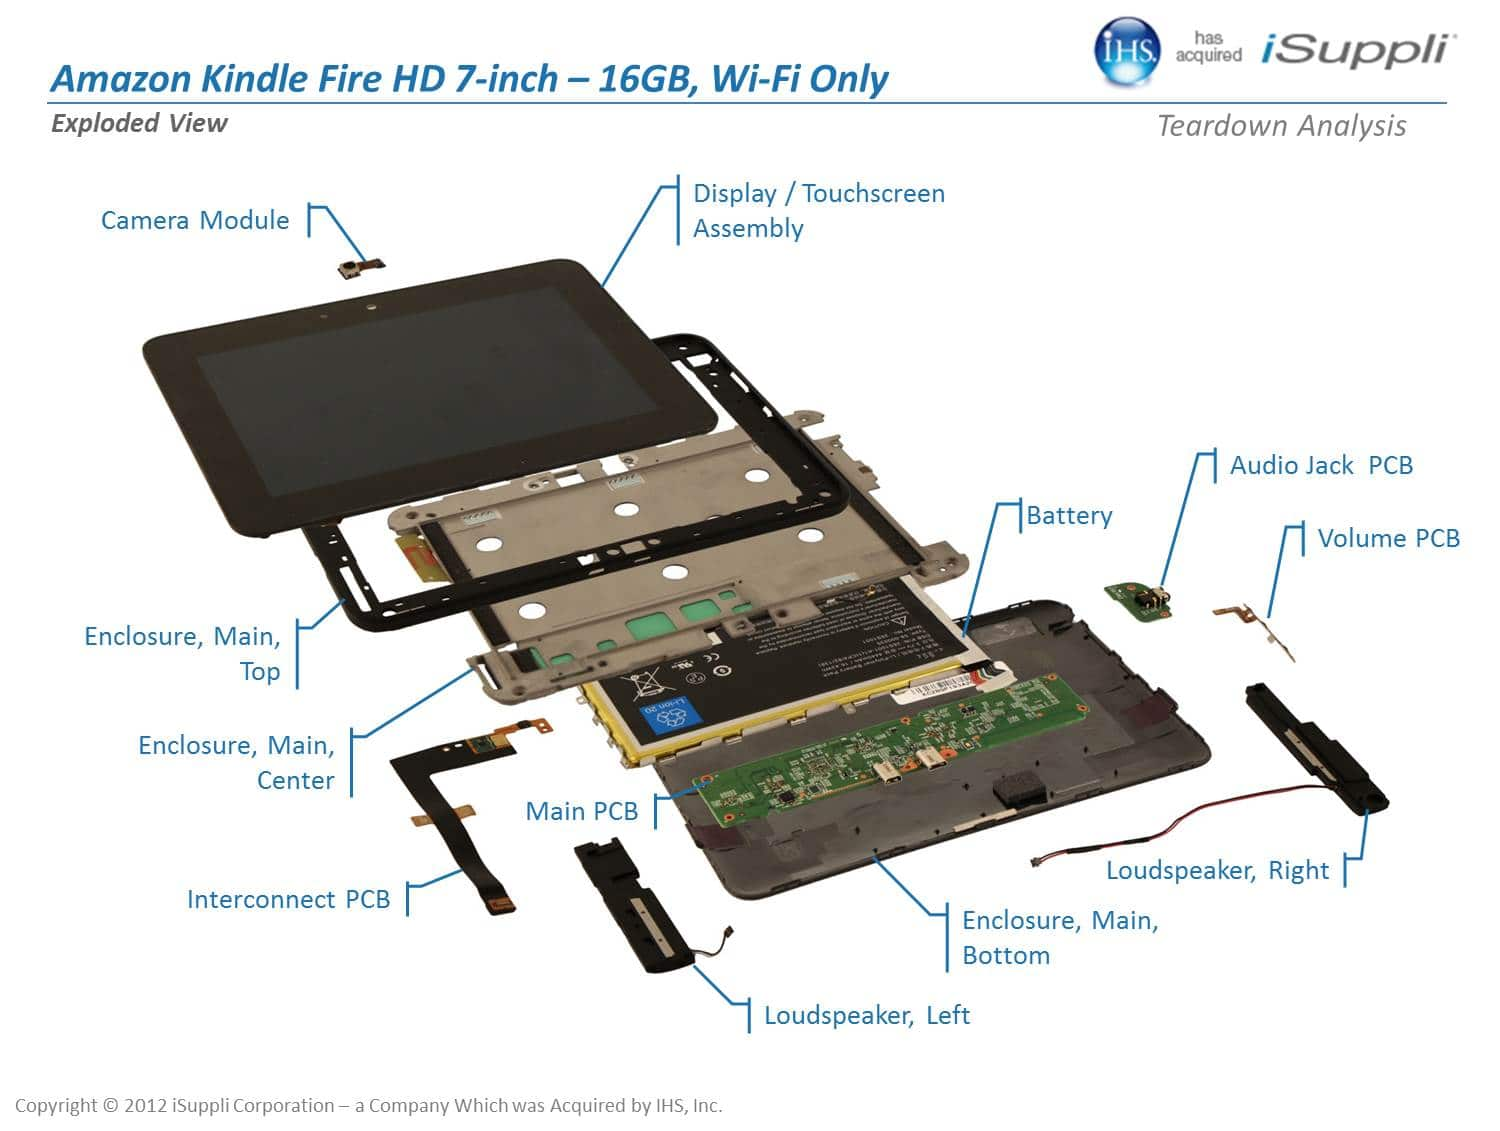 Amazon Loses Less Money With Kindle Fire Hd  Teardown